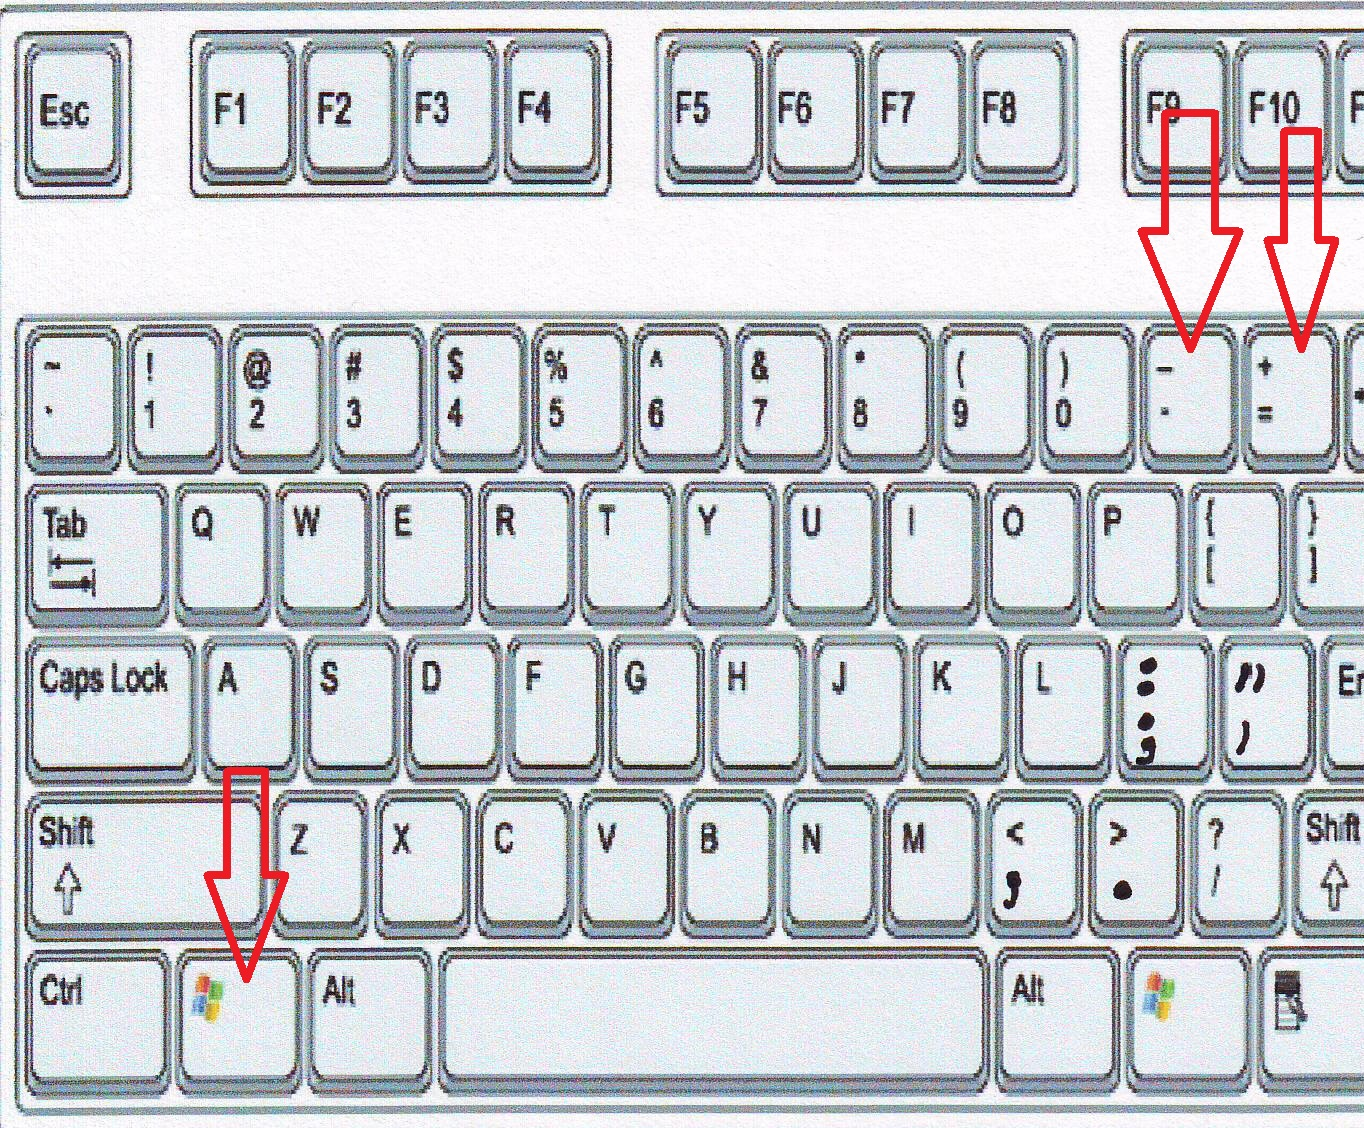 64e003c50e You can zoom in and zoom out in windows PC without using any extra  software, just use this keyboard shortcut key to zoom in and zoom out  everything in ...